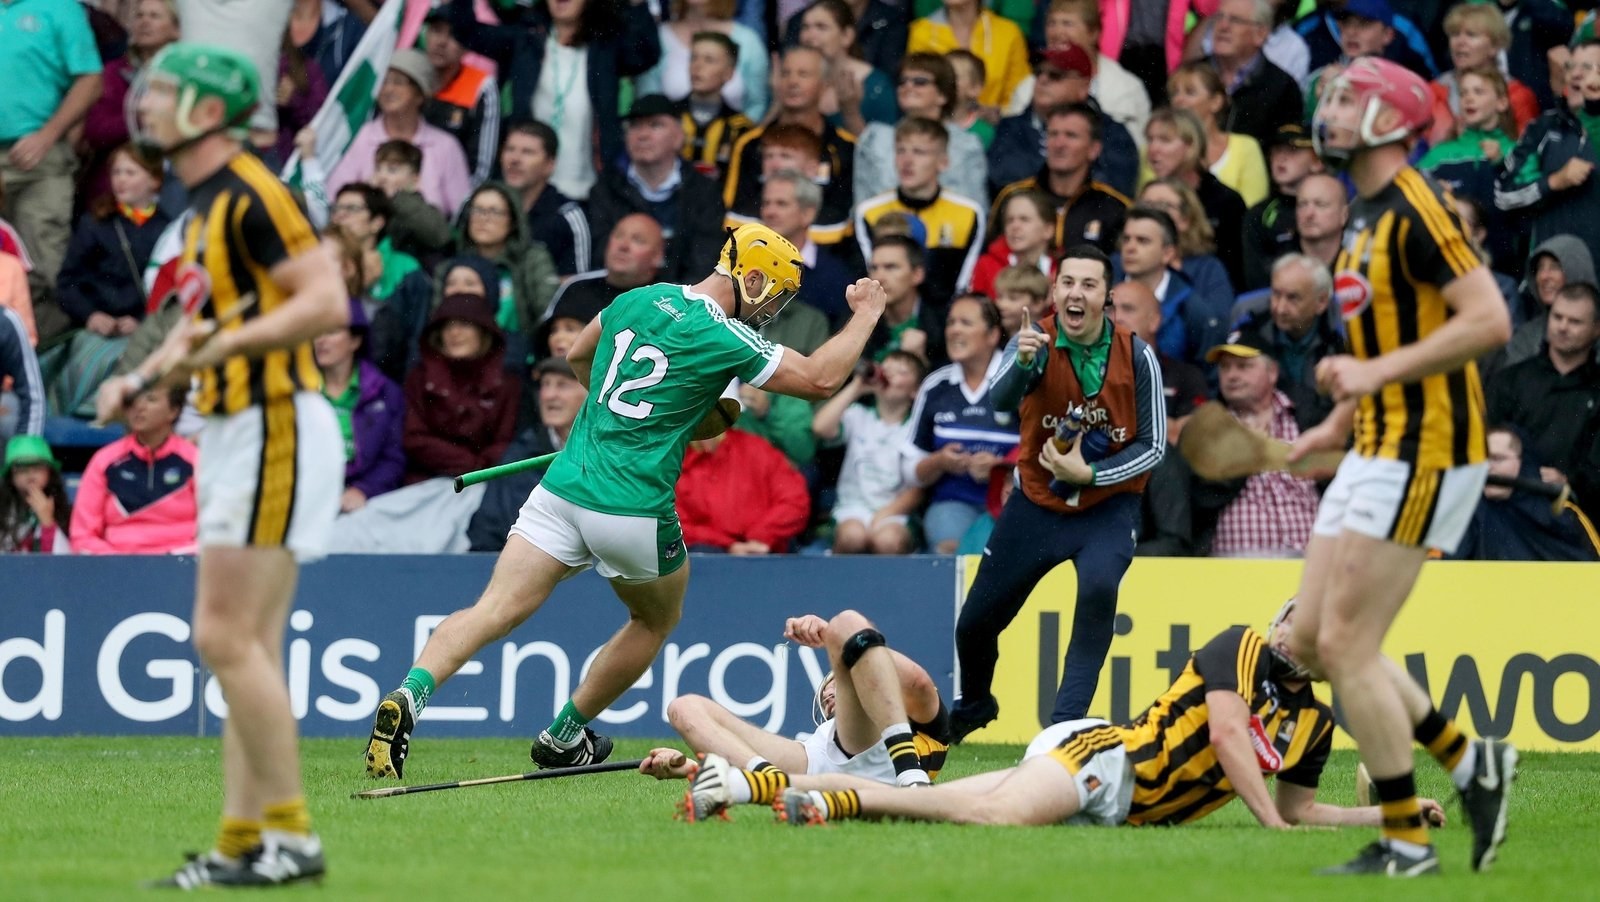 Image - Tom Morrissey lands a crucial point against Kilkenny in the All-Ireland quarter-final